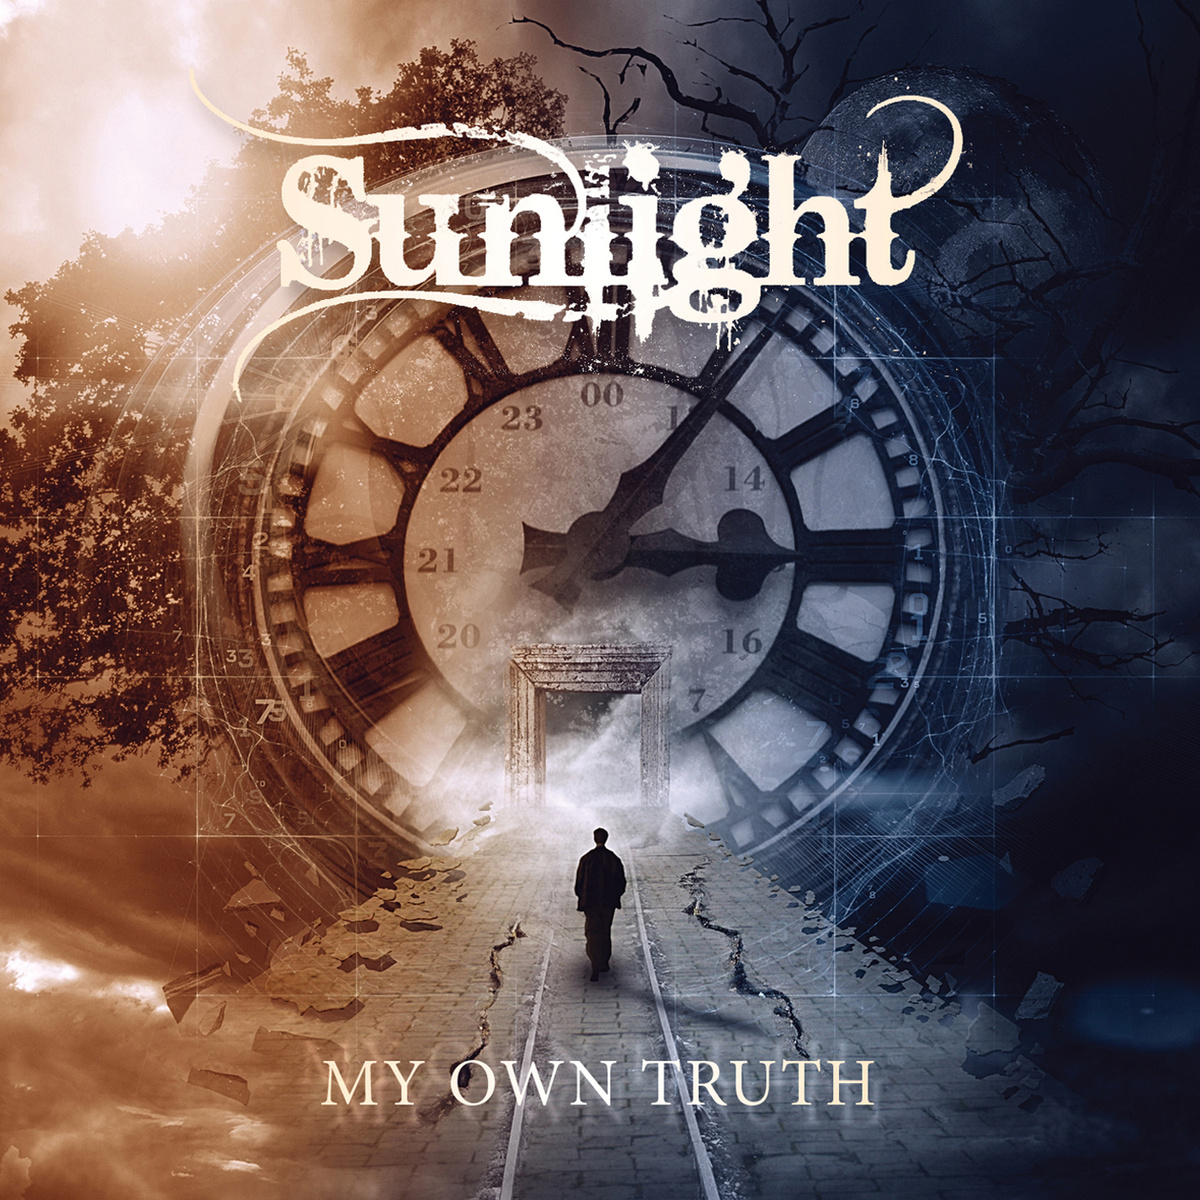 a2015_05_08_12_13_49_SUNLIGHT - My Own Truth - cover.jpg